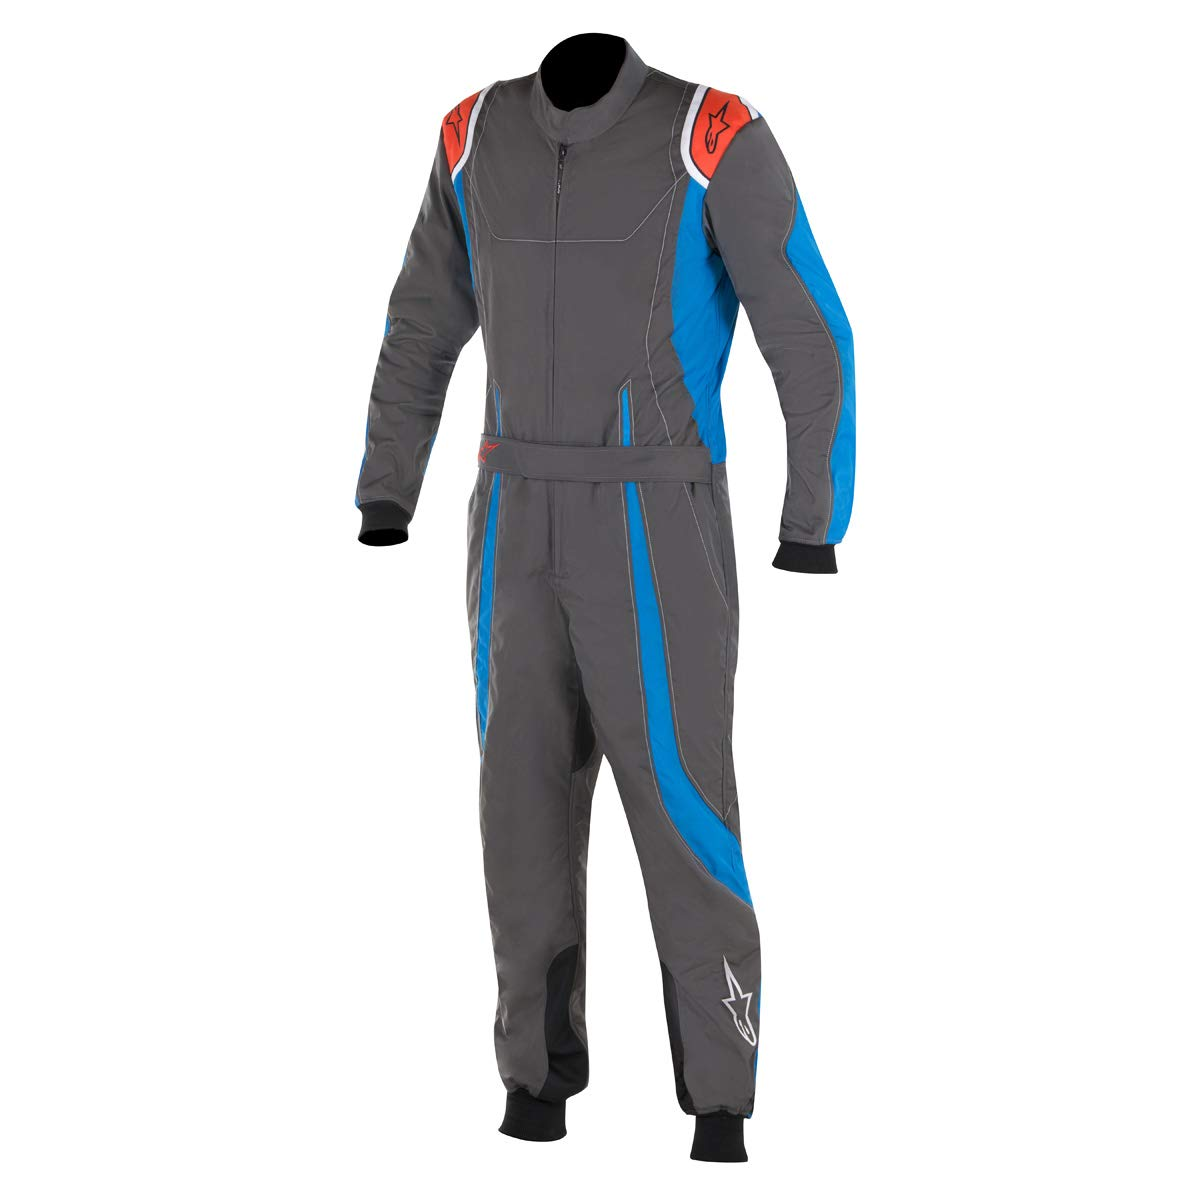 Alpinestars 3356017-1754-56 K-MX 9 Suit, Anthracite/Blue/Red Fluorescent, Size 56, CIK FIA Level 2, 3-Layer by Alpinestars